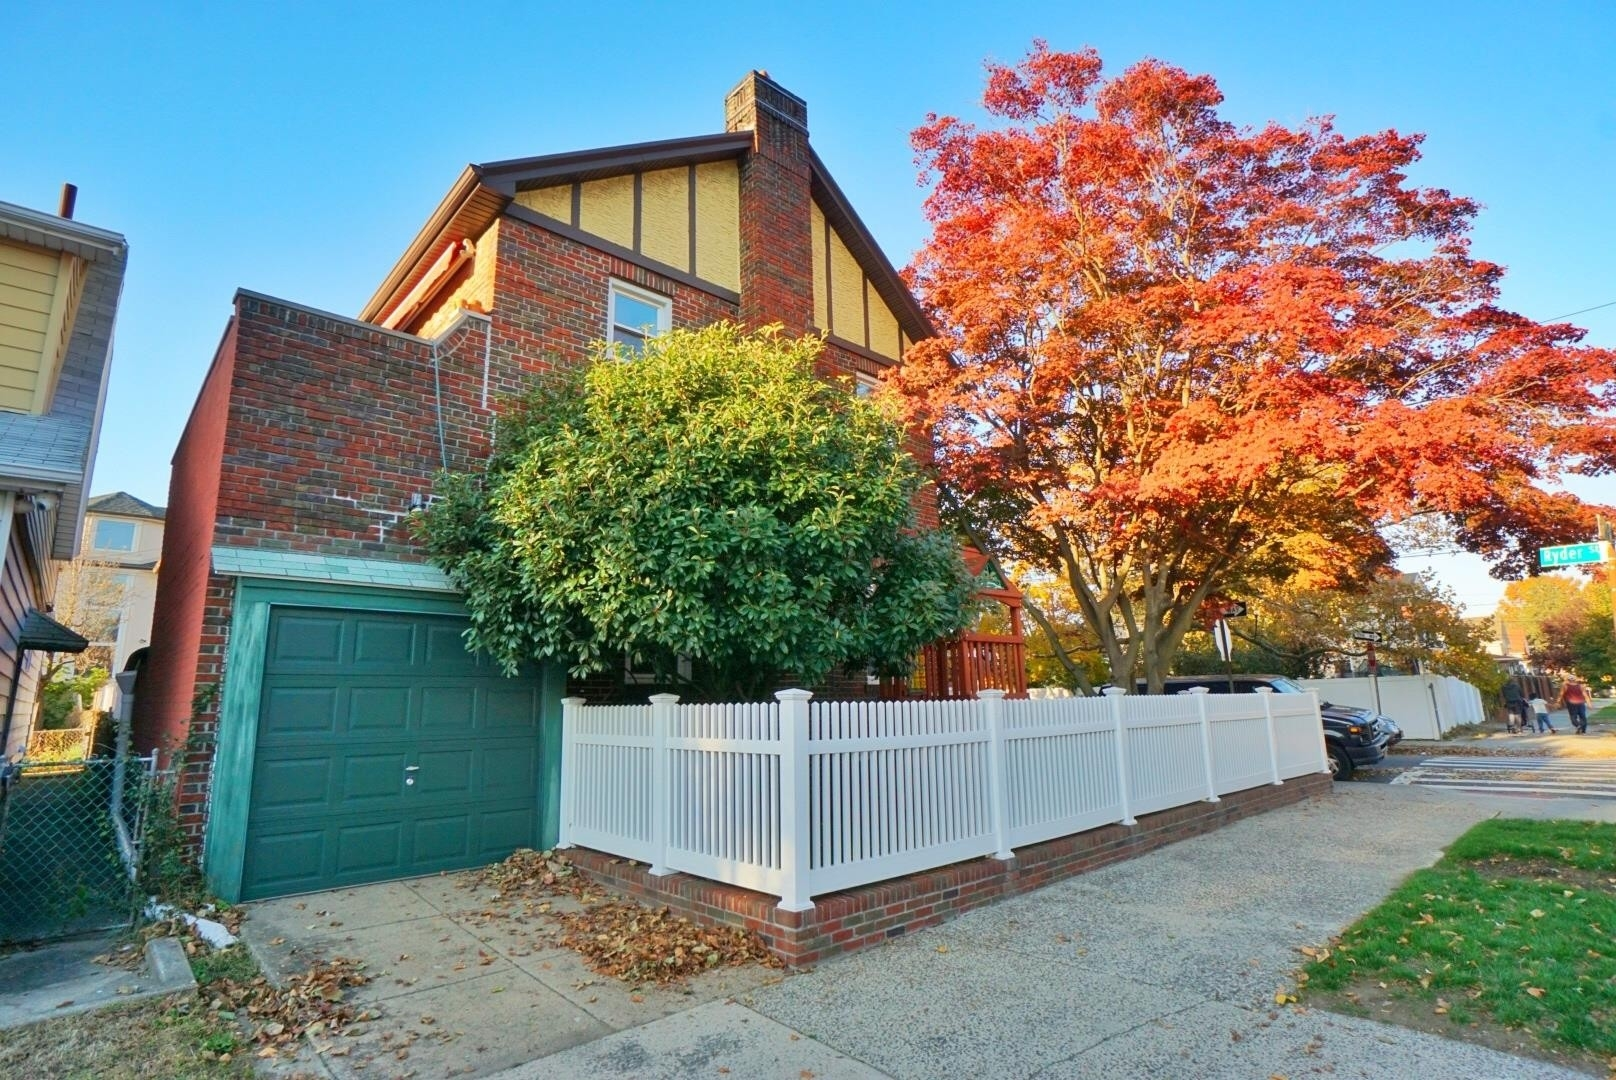 24. Single Family Townhouse for Sale at 1684 RYDER ST , TOWNHOUSE Marine Park, Brooklyn, NY 11234